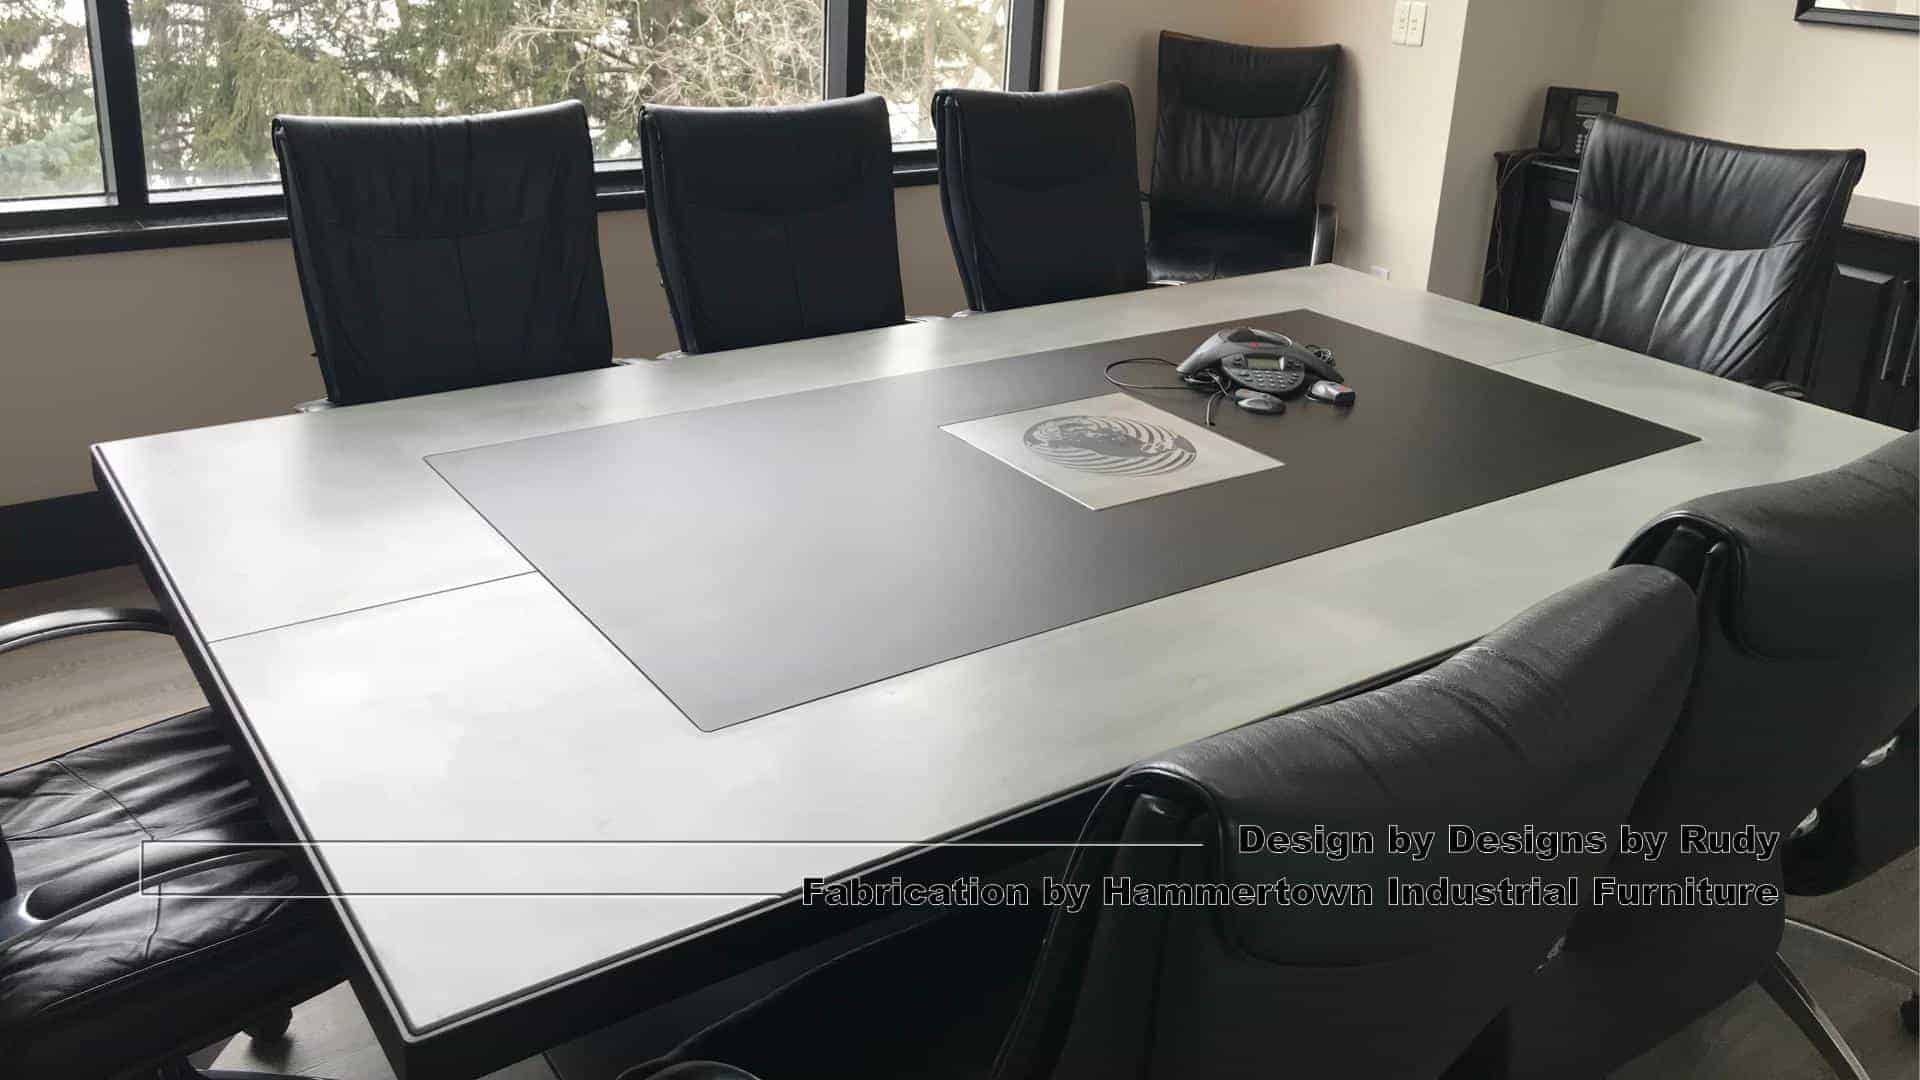 3 Concrete and steel boardroom table for NAC, Designs by Rudy, Hammertown Industrial Furniture, angle view